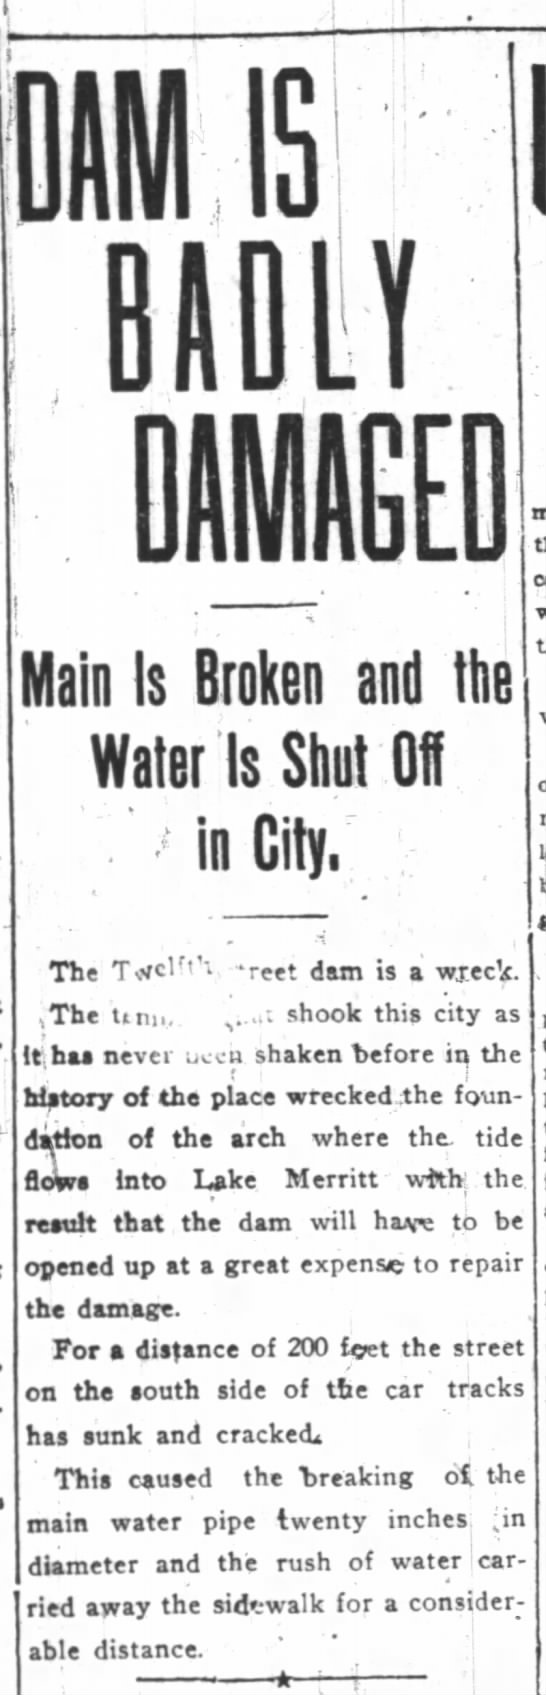 12th St. Dam damaged in 1906 earthquake - Til ill DAMAGED Main Is Broken and the Water is...